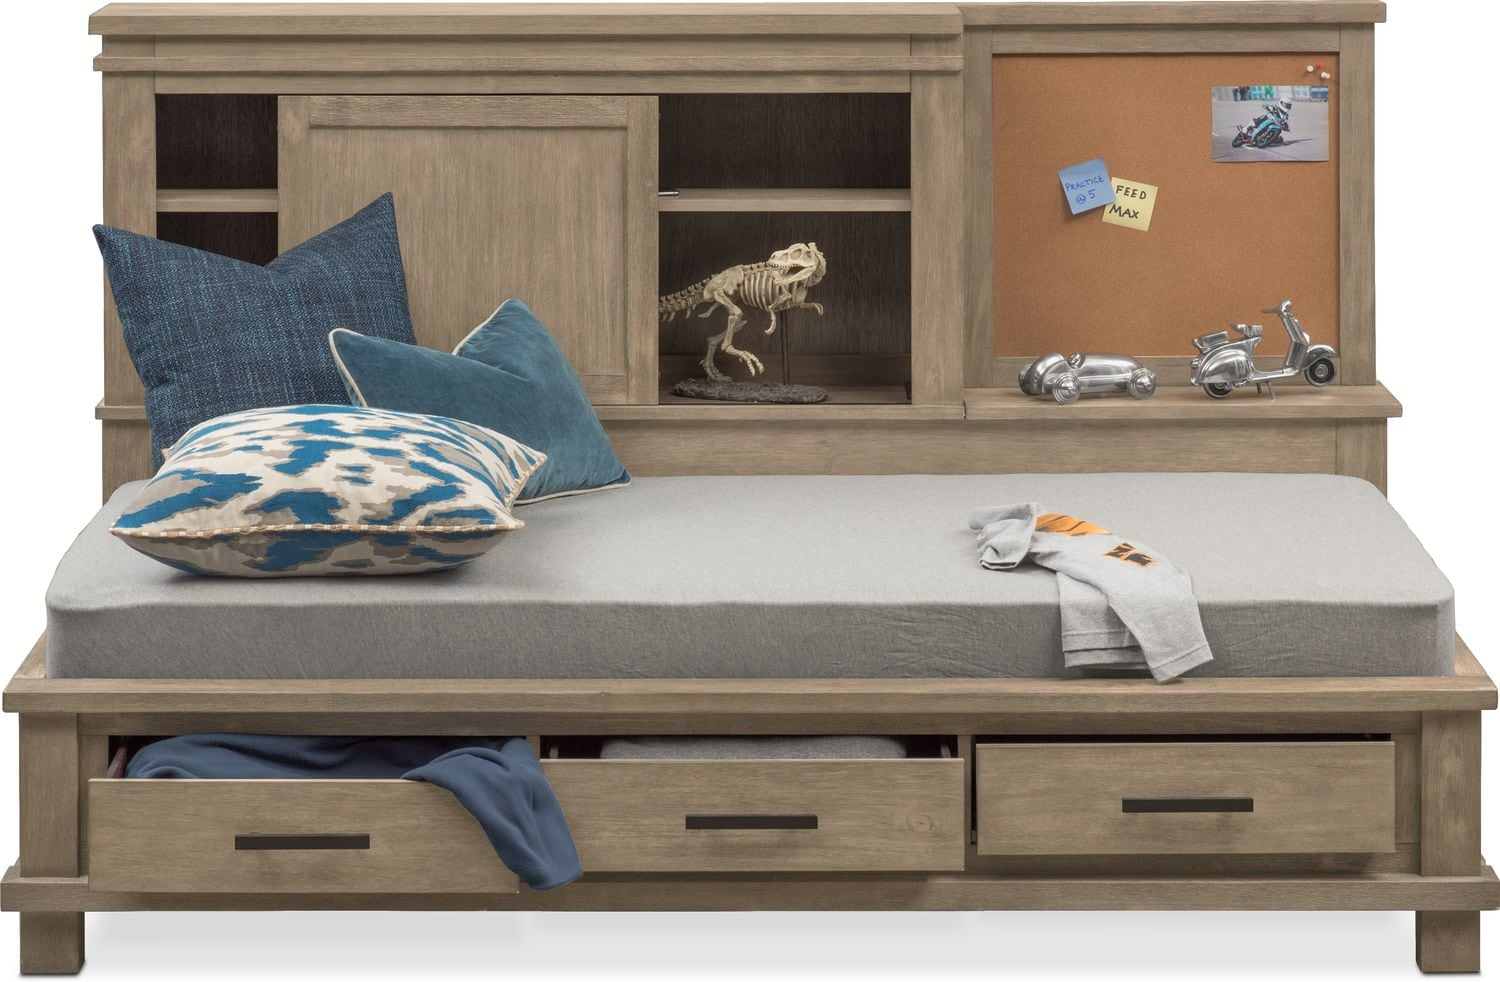 Tribeca Youth Twin Lounge Bed with Storage  Gray  Value